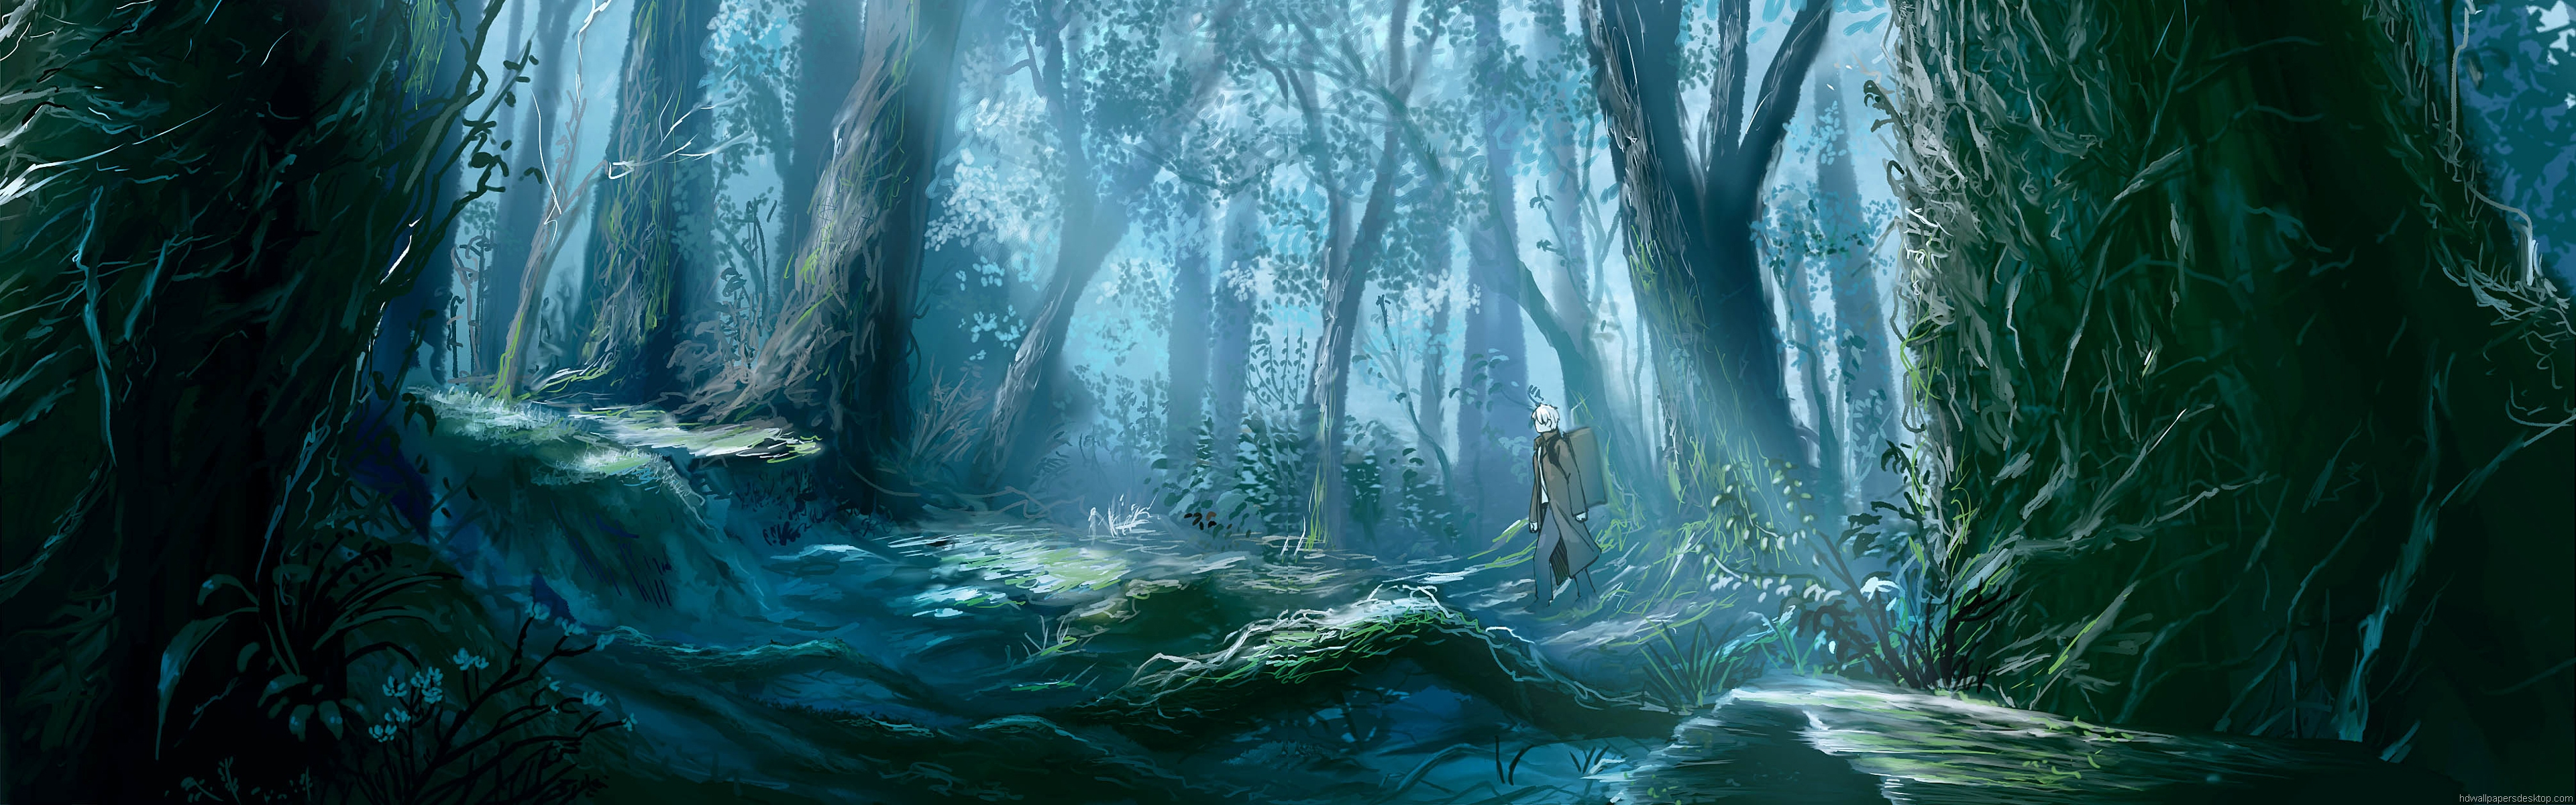 Background image 3840x1200 - Jpg 3840x1200 Forest Dual Monitor Background